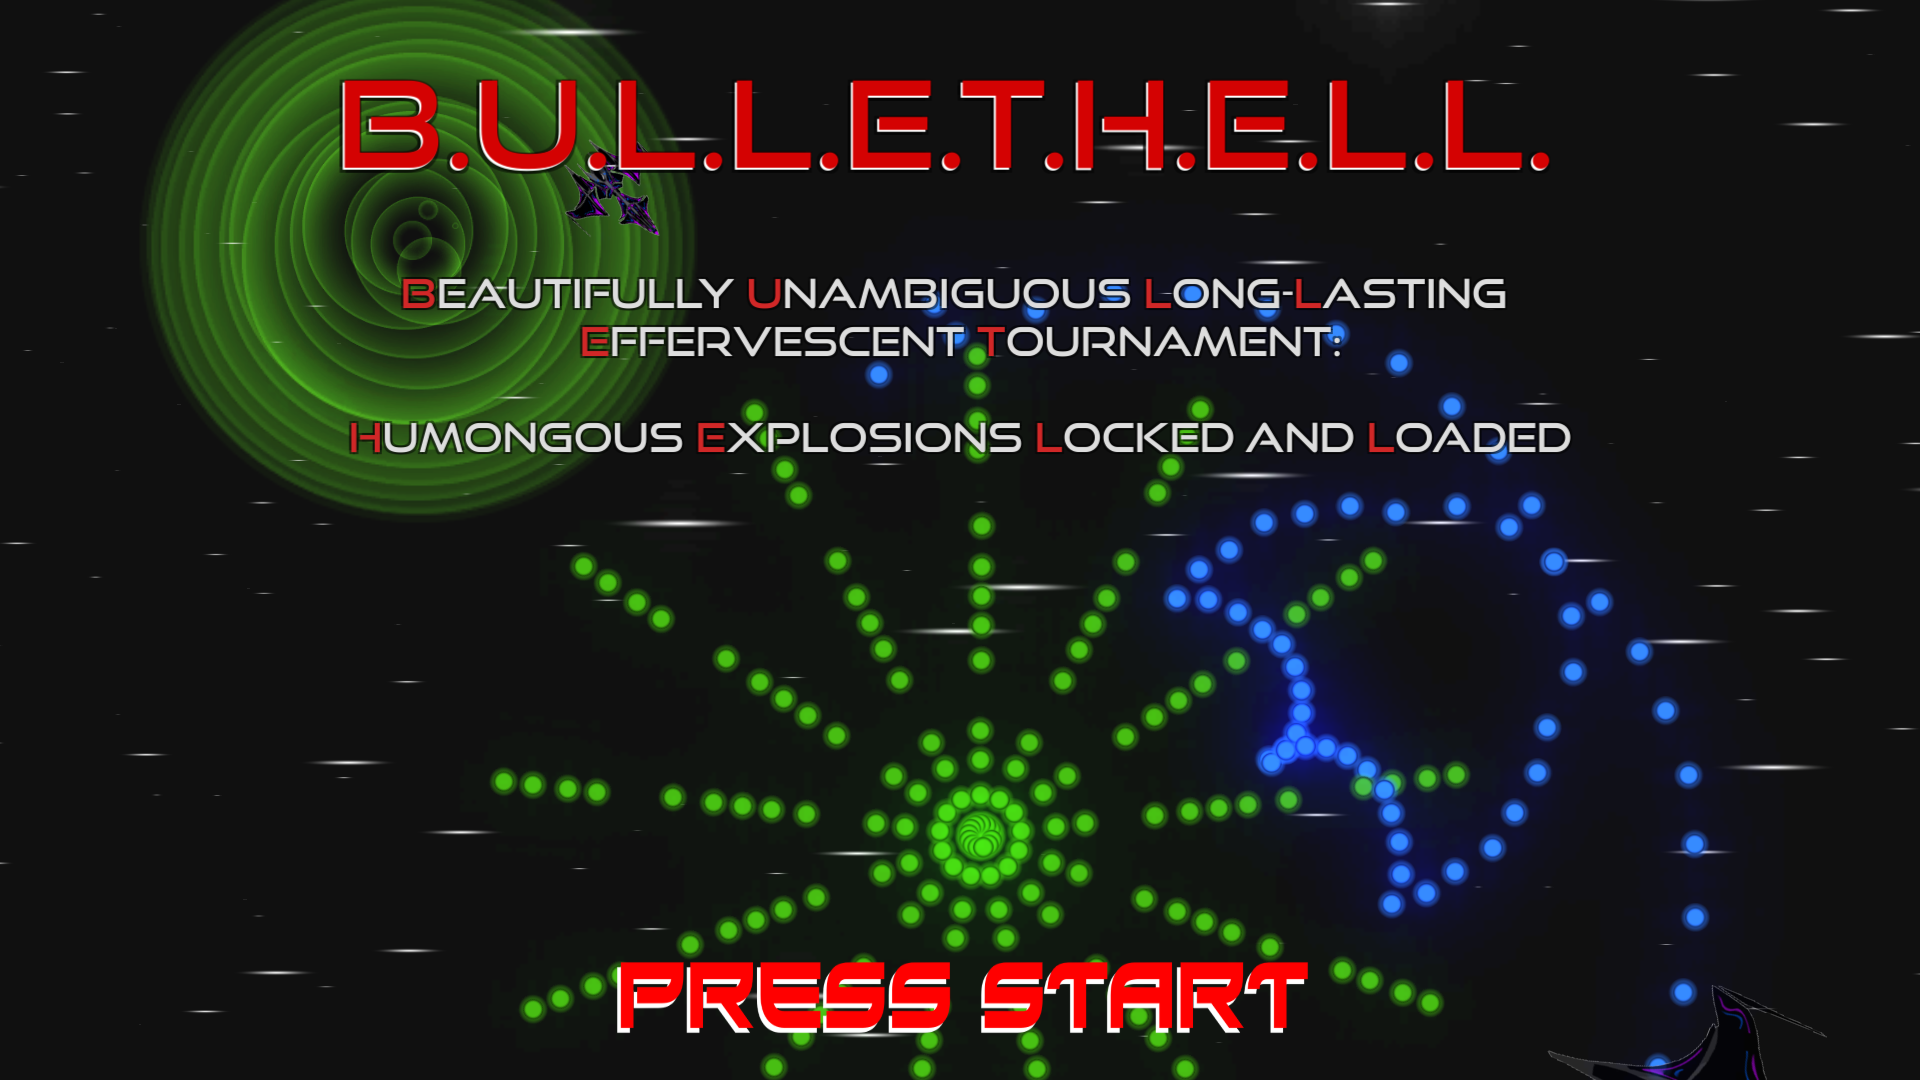 Beautifully Unambiguous Long-Lasting Effervescent Tournament: Humongous Explosions Locked and Loaded - 2-player competitive bullet hell game